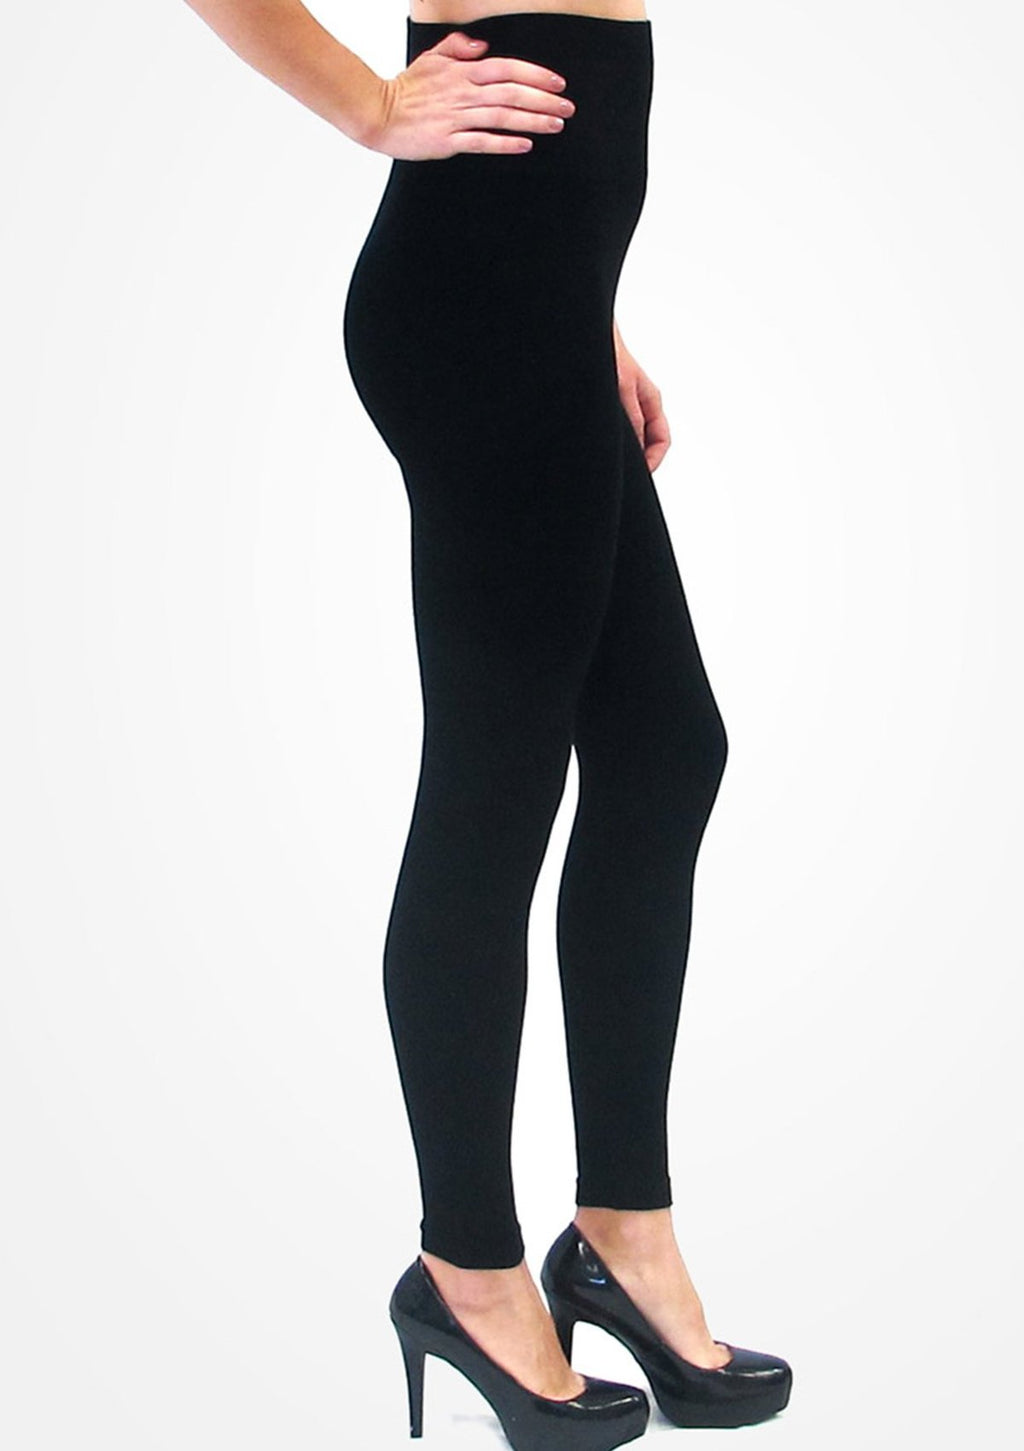 Elietian Black High Waisted Leggings